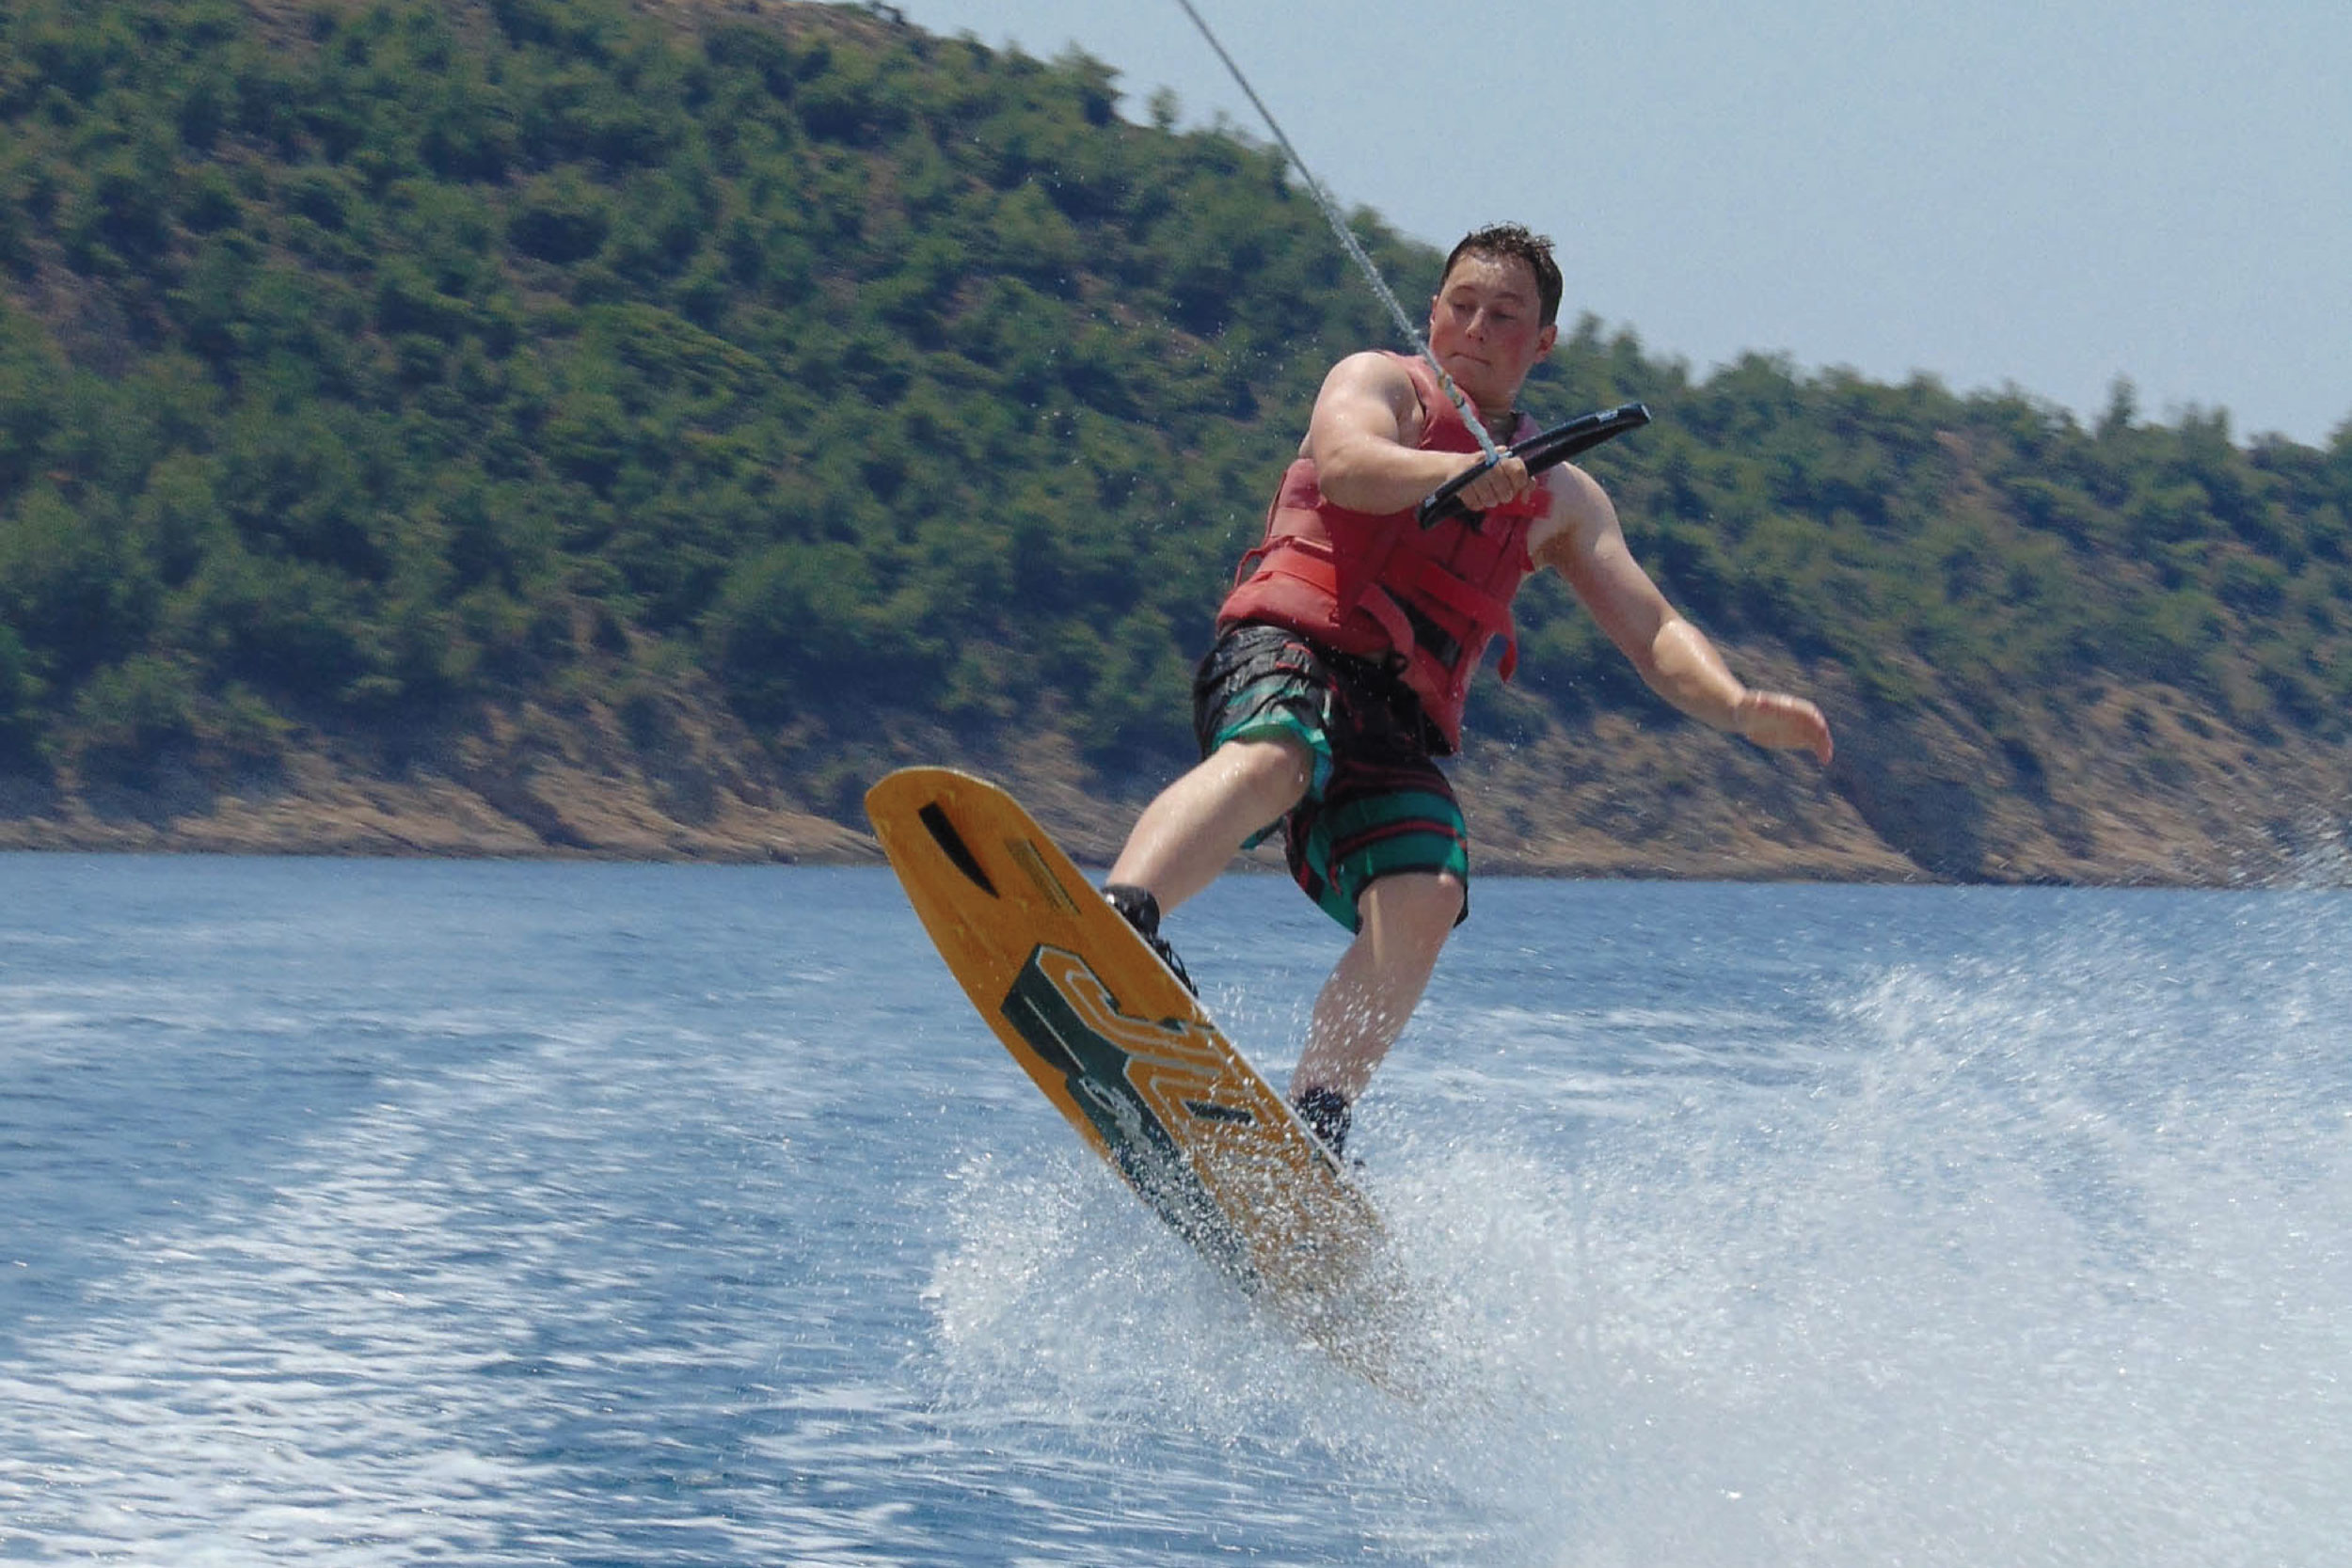 Wakeboard Water Sports Dolphins Thassos Greece